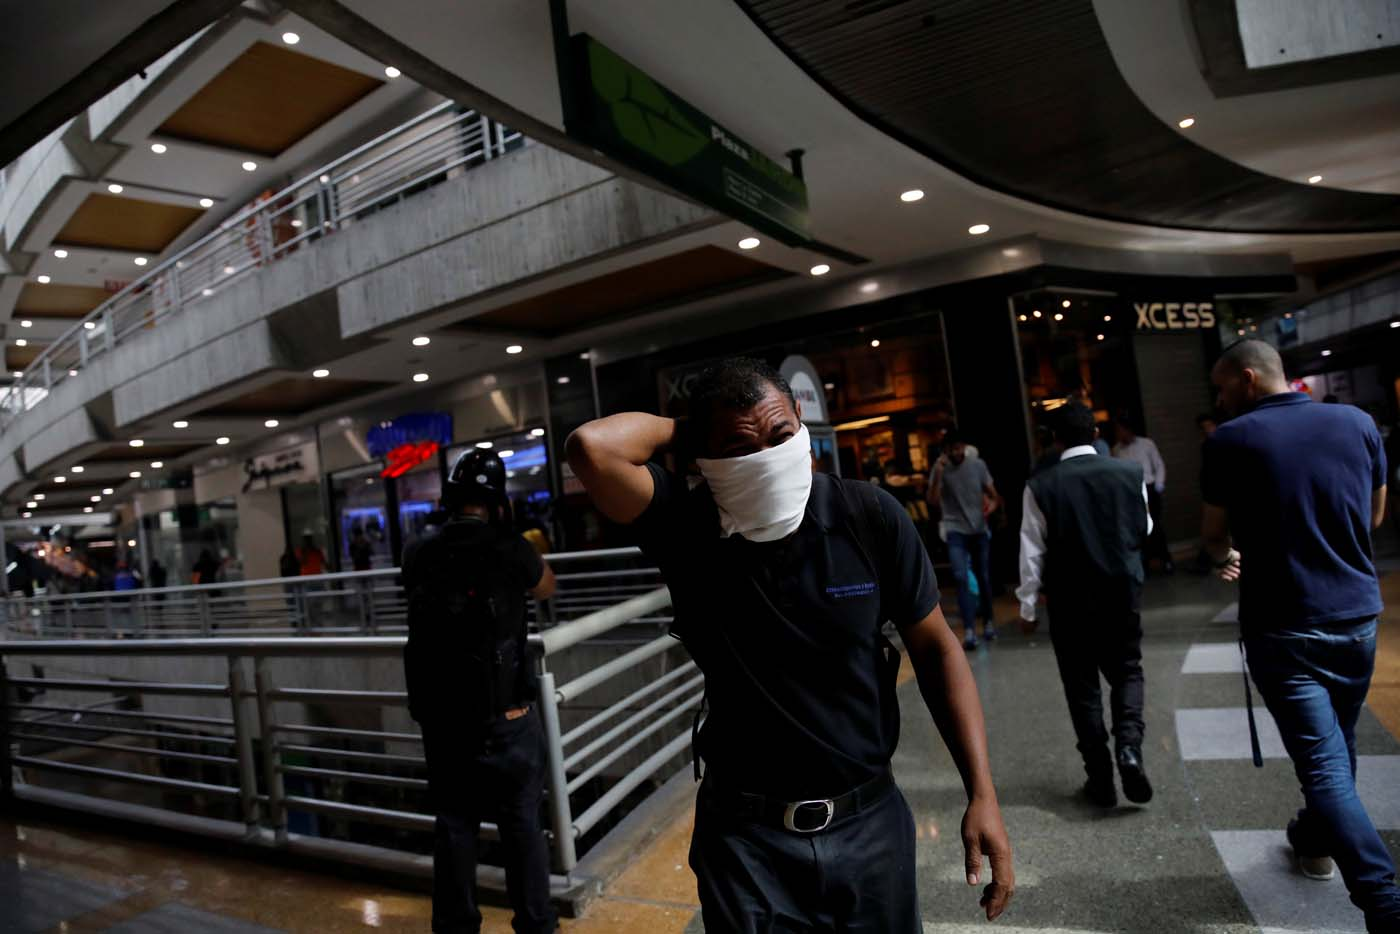 A man covers his face from tear gas inside a shopping mall as clashes between demonstrators and security forces occured on the streets during a rally against Venezuelan President Nicolas Maduro's government in Caracas, Venezuela, July 6, 2017. REUTERS/Carlos Garcia Rawlins